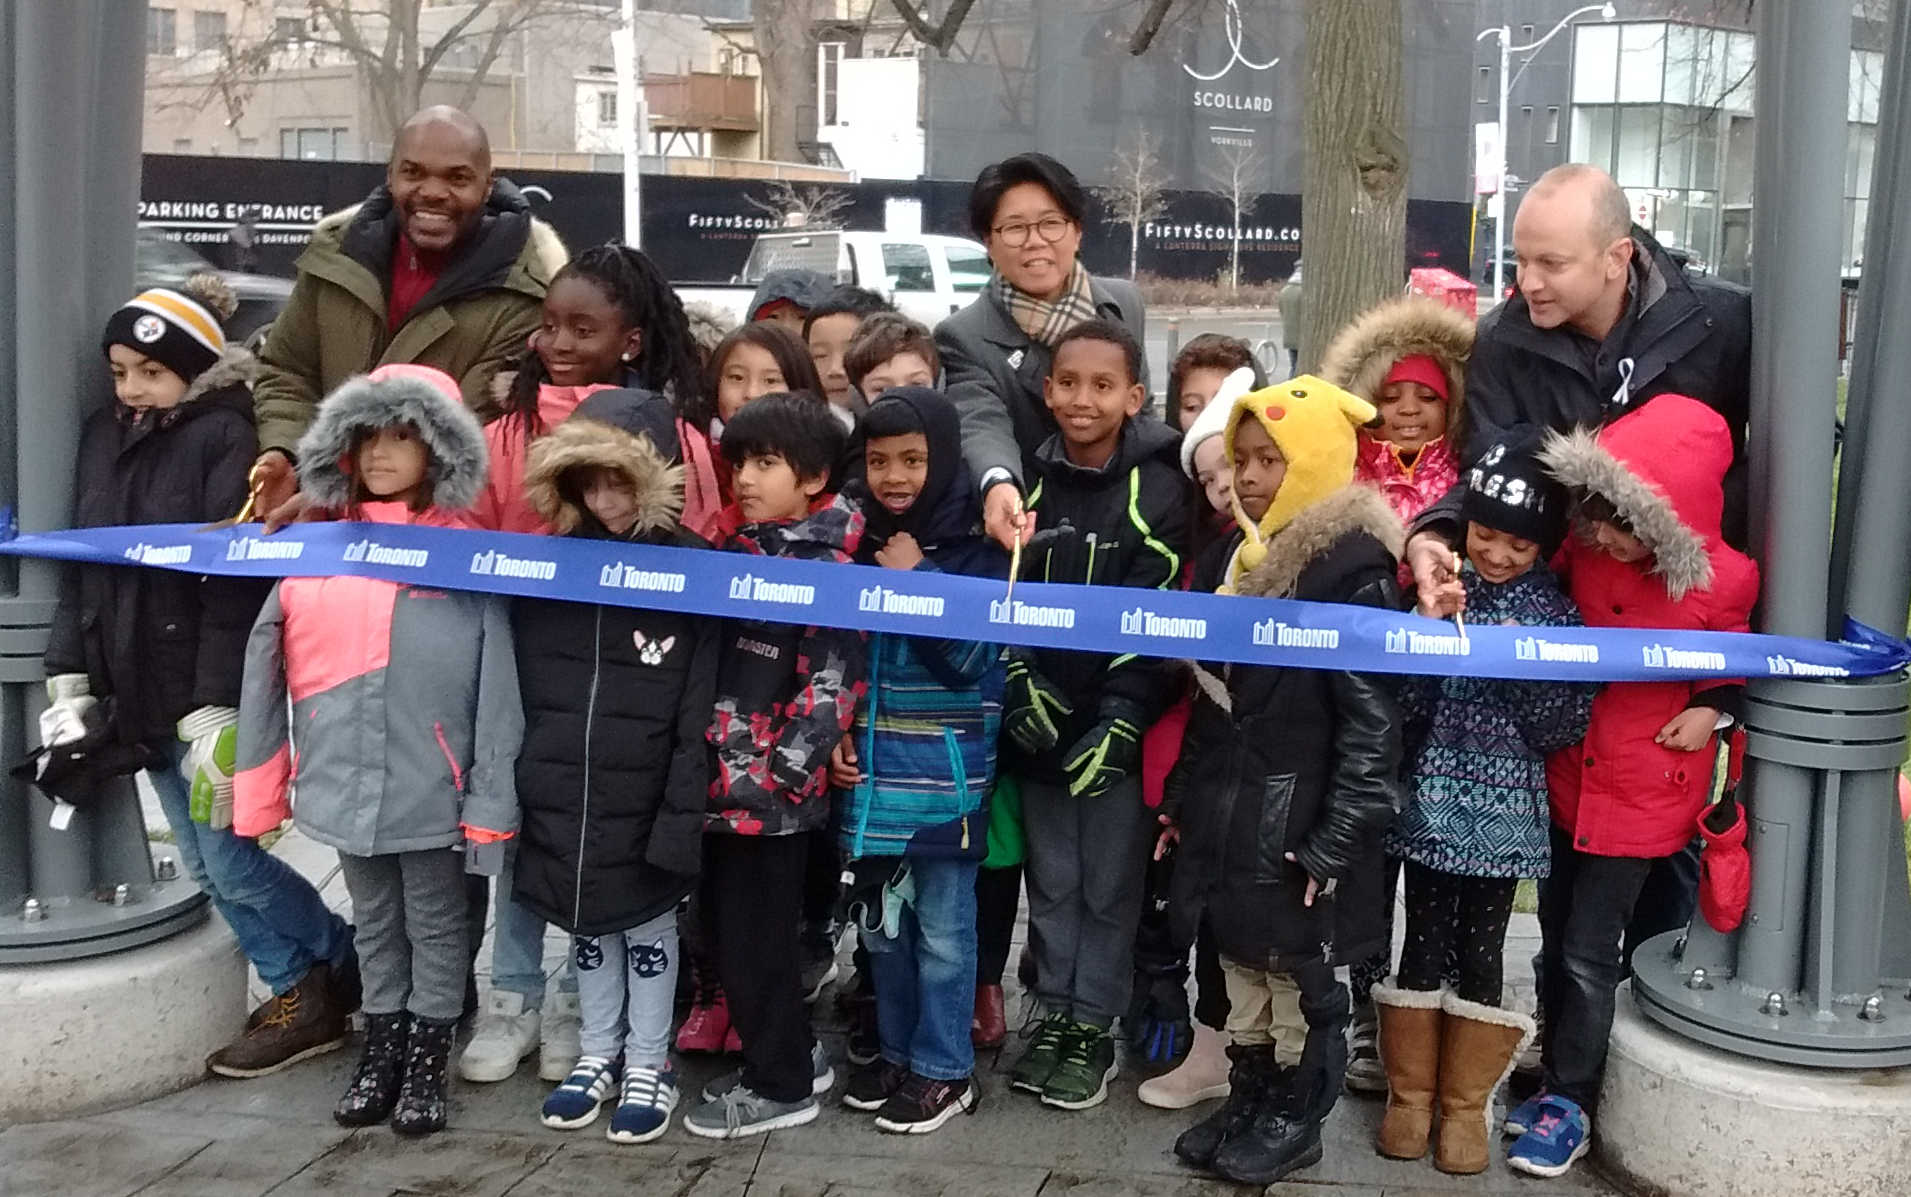 Chris Moise, Kristyn Wong-Tam, and Mike Layton cut the ribbon at the reopening of the Jesse Ketchum Parkette. They are joined by children from the Jesse Ketchum School.